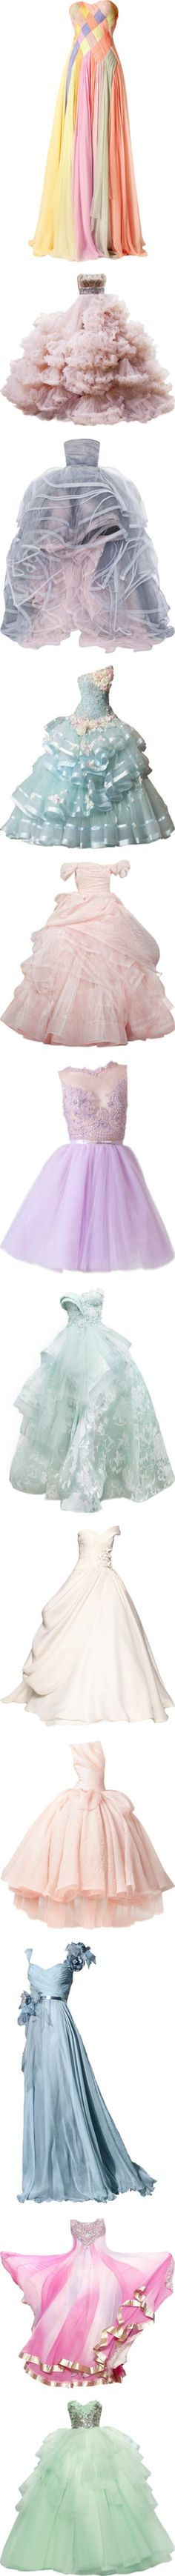 """candy coated couture"" by missherjh ❤ liked on Polyvore jαɢlαdy"